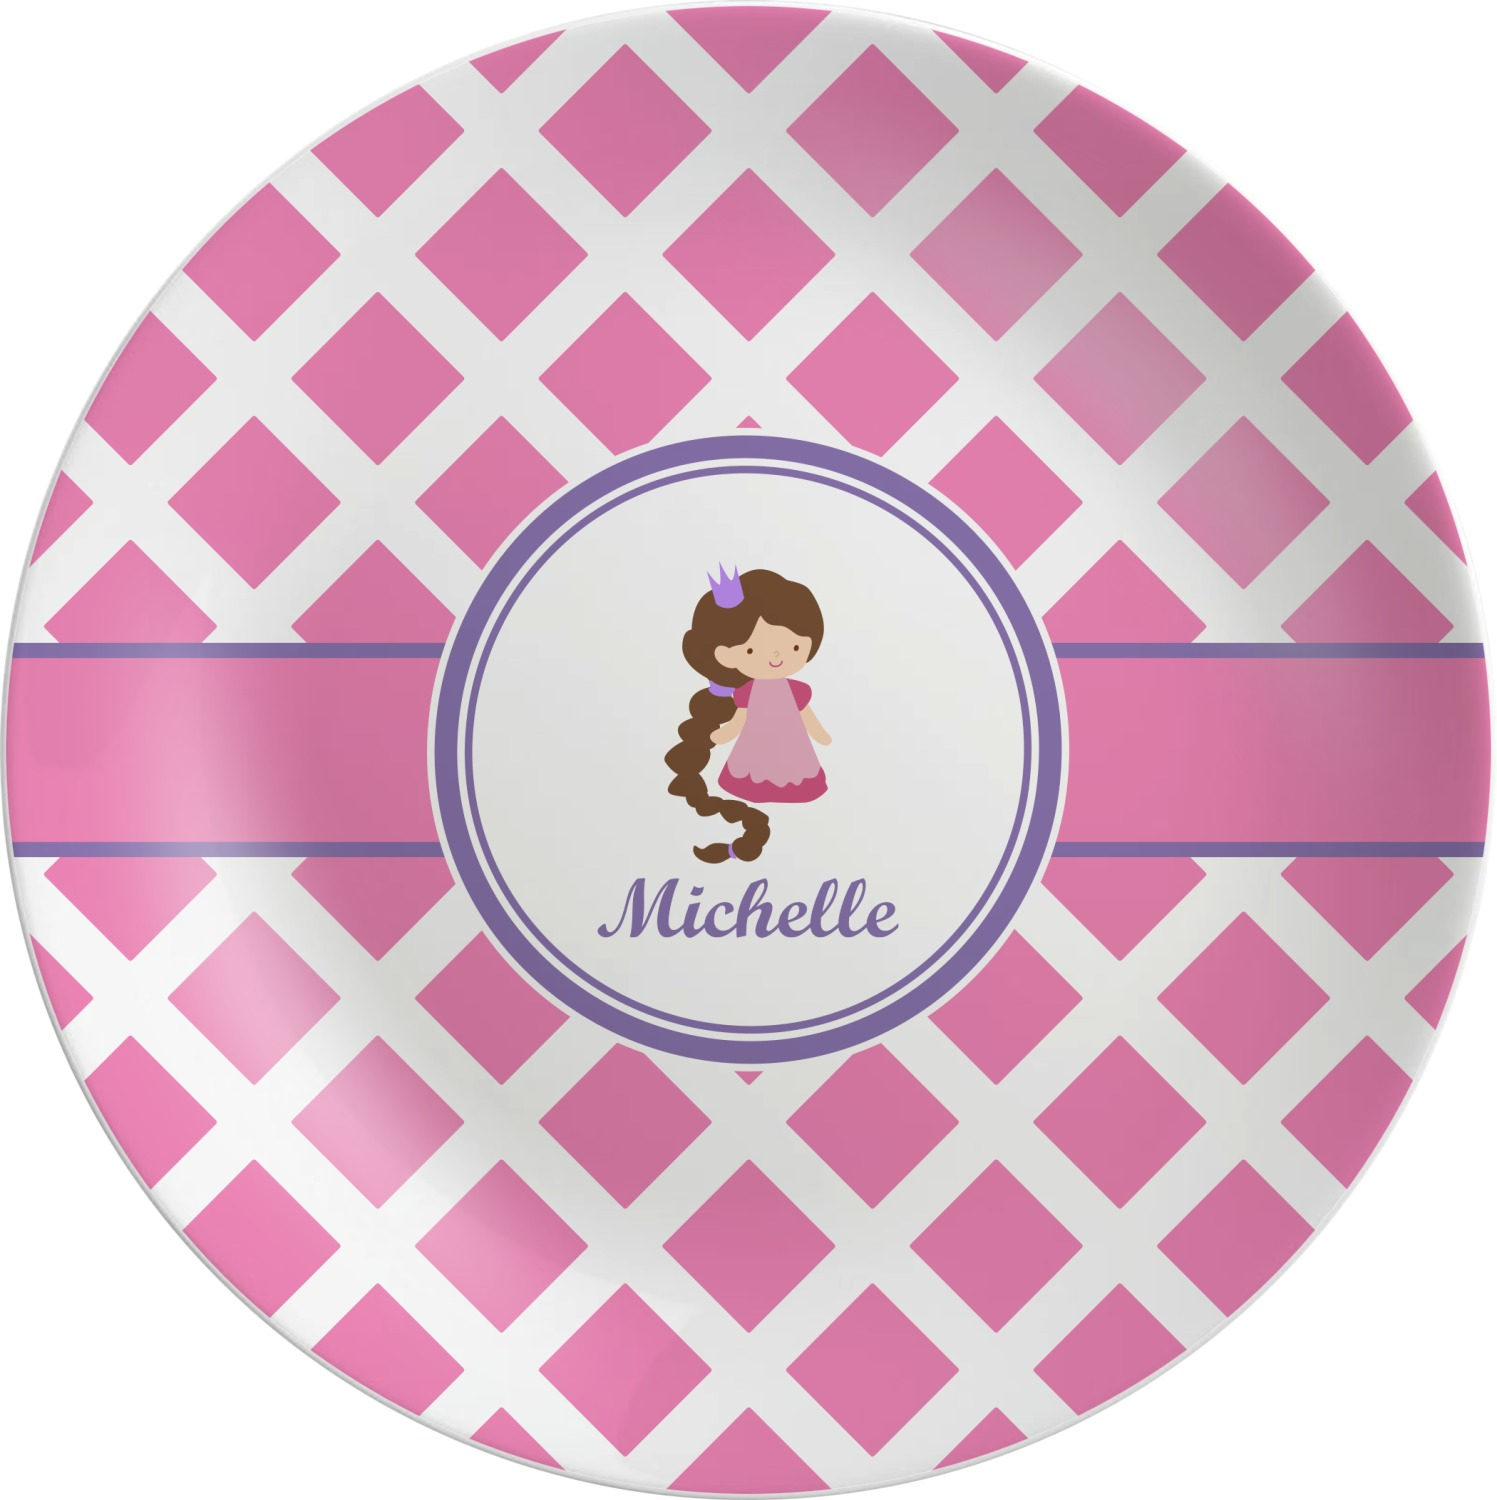 Diamond Print w/Princess Melamine Plate (Personalized)  sc 1 st  YouCustomizeIt & Diamond Print w/Princess Melamine Plate (Personalized) - YouCustomizeIt